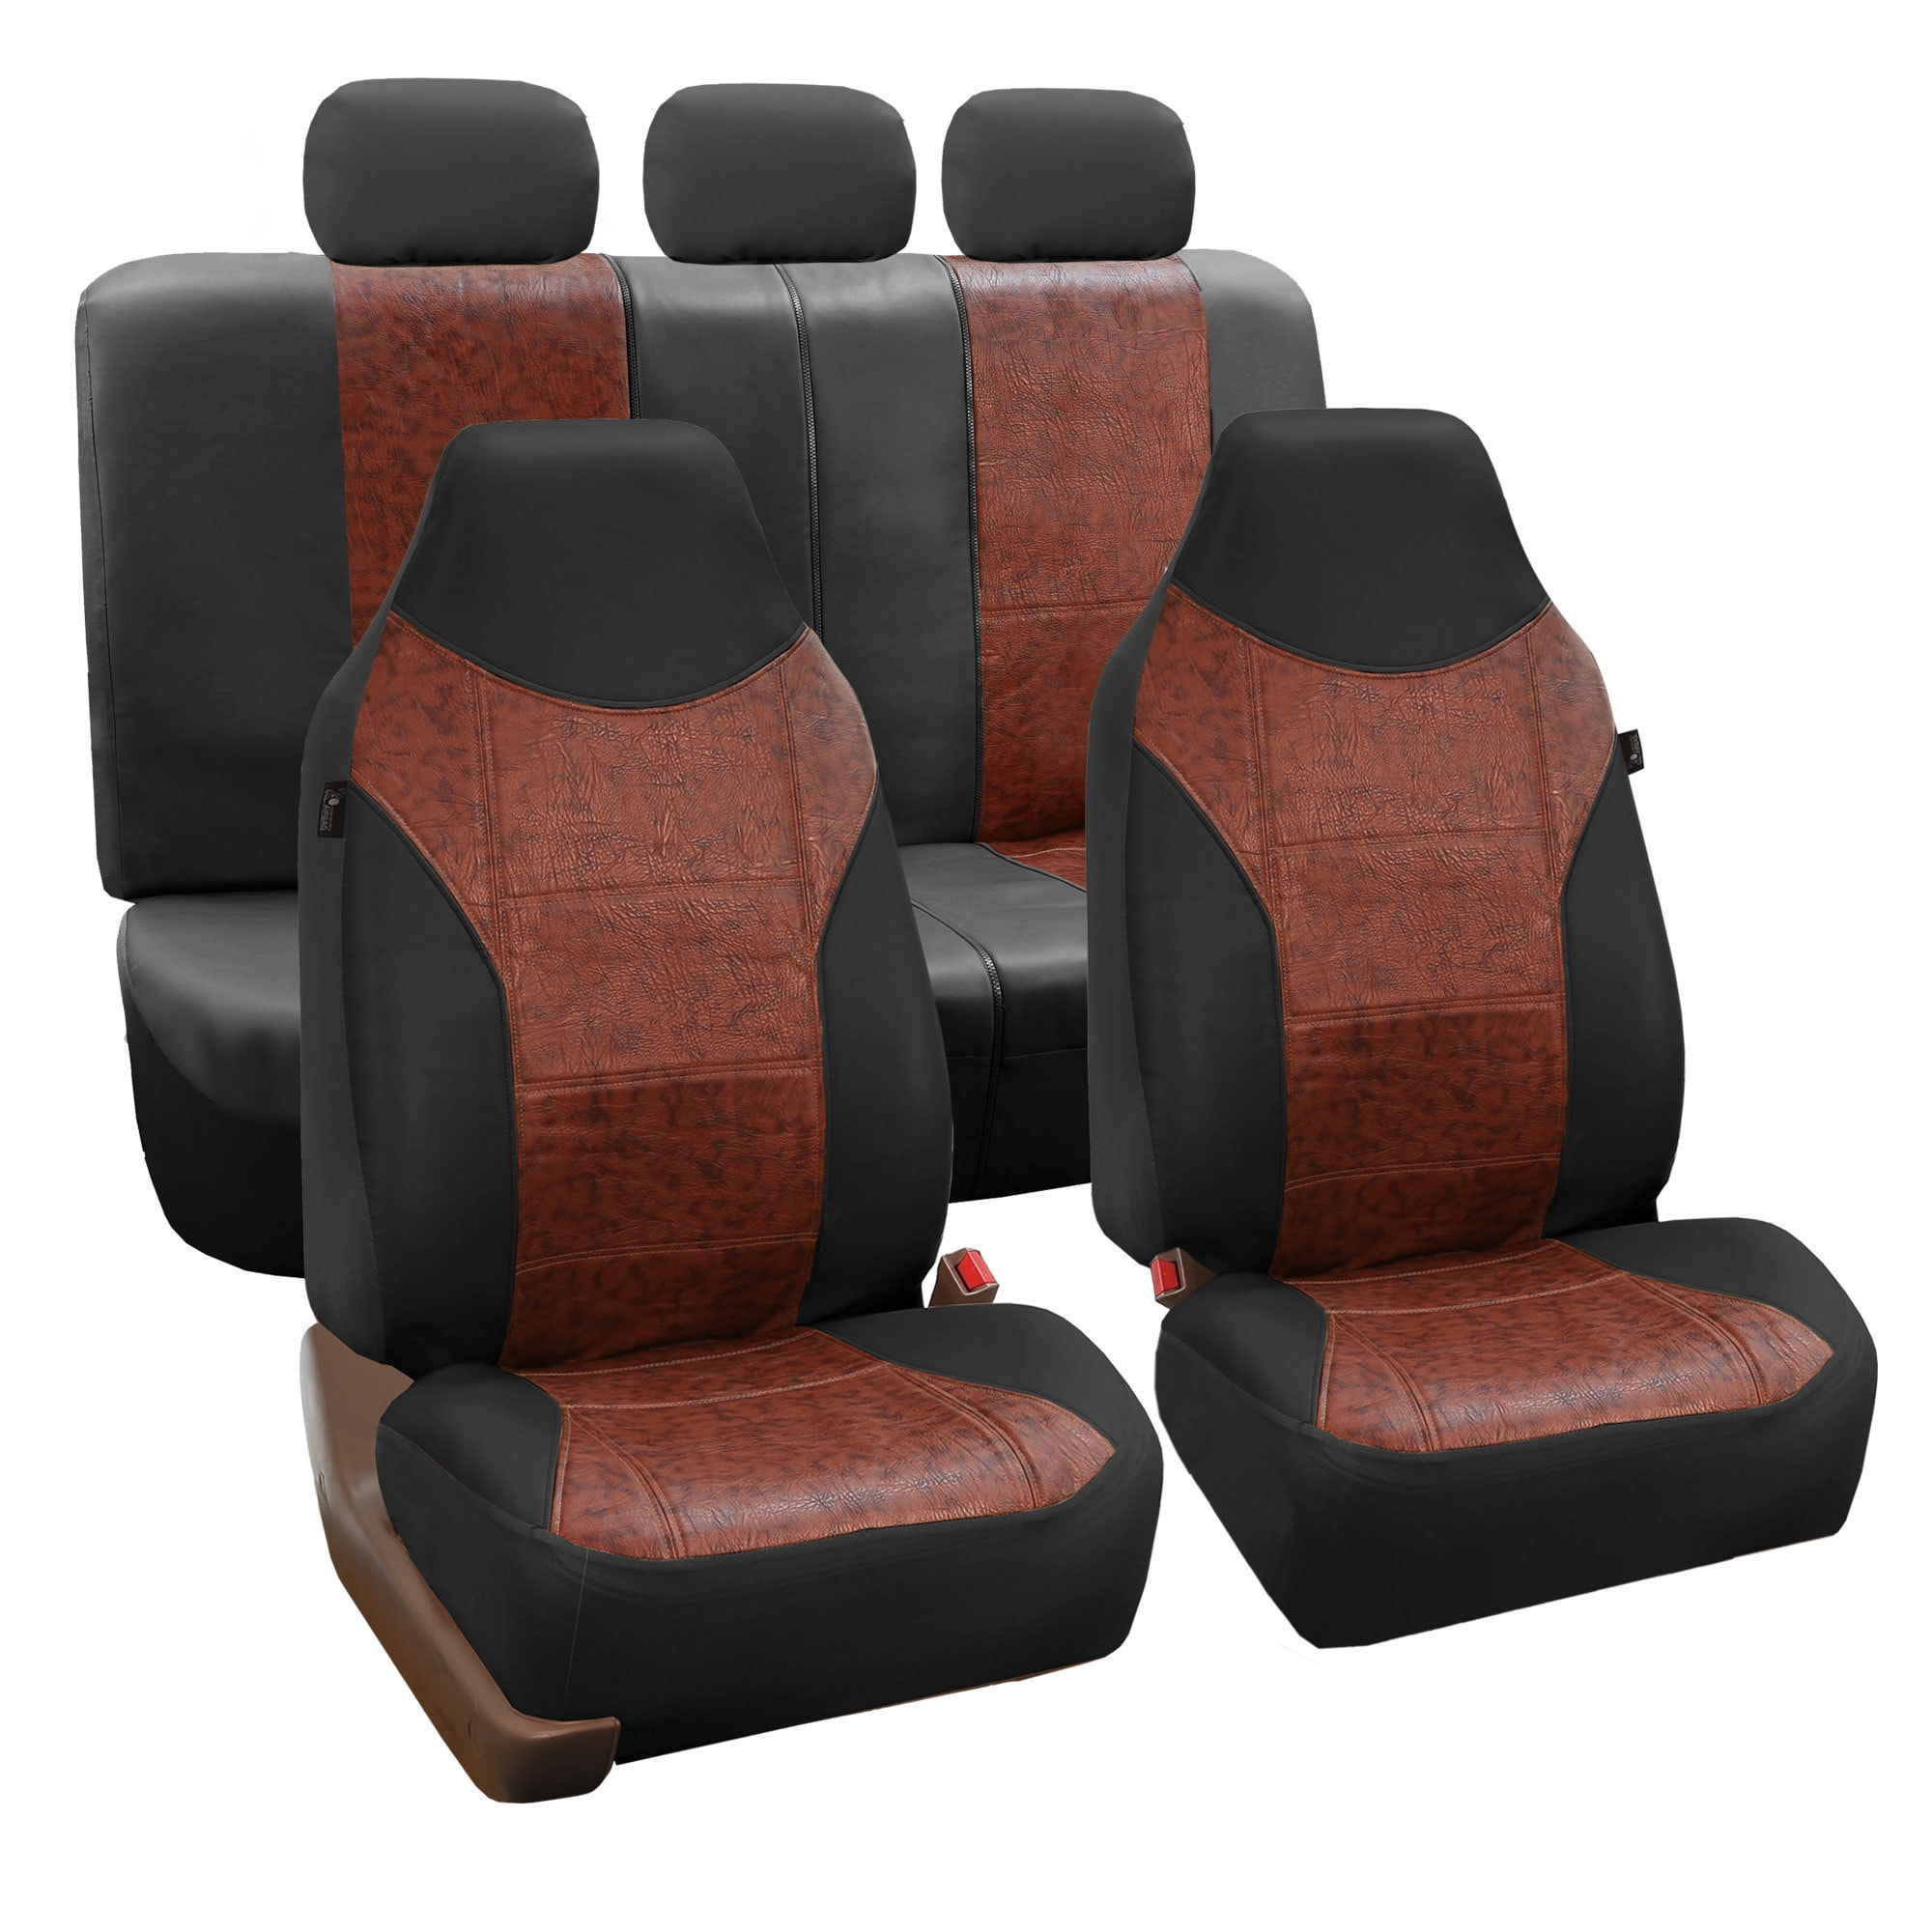 FH Group Black/ Brown PU Textured Leather Auto Seat Cover...